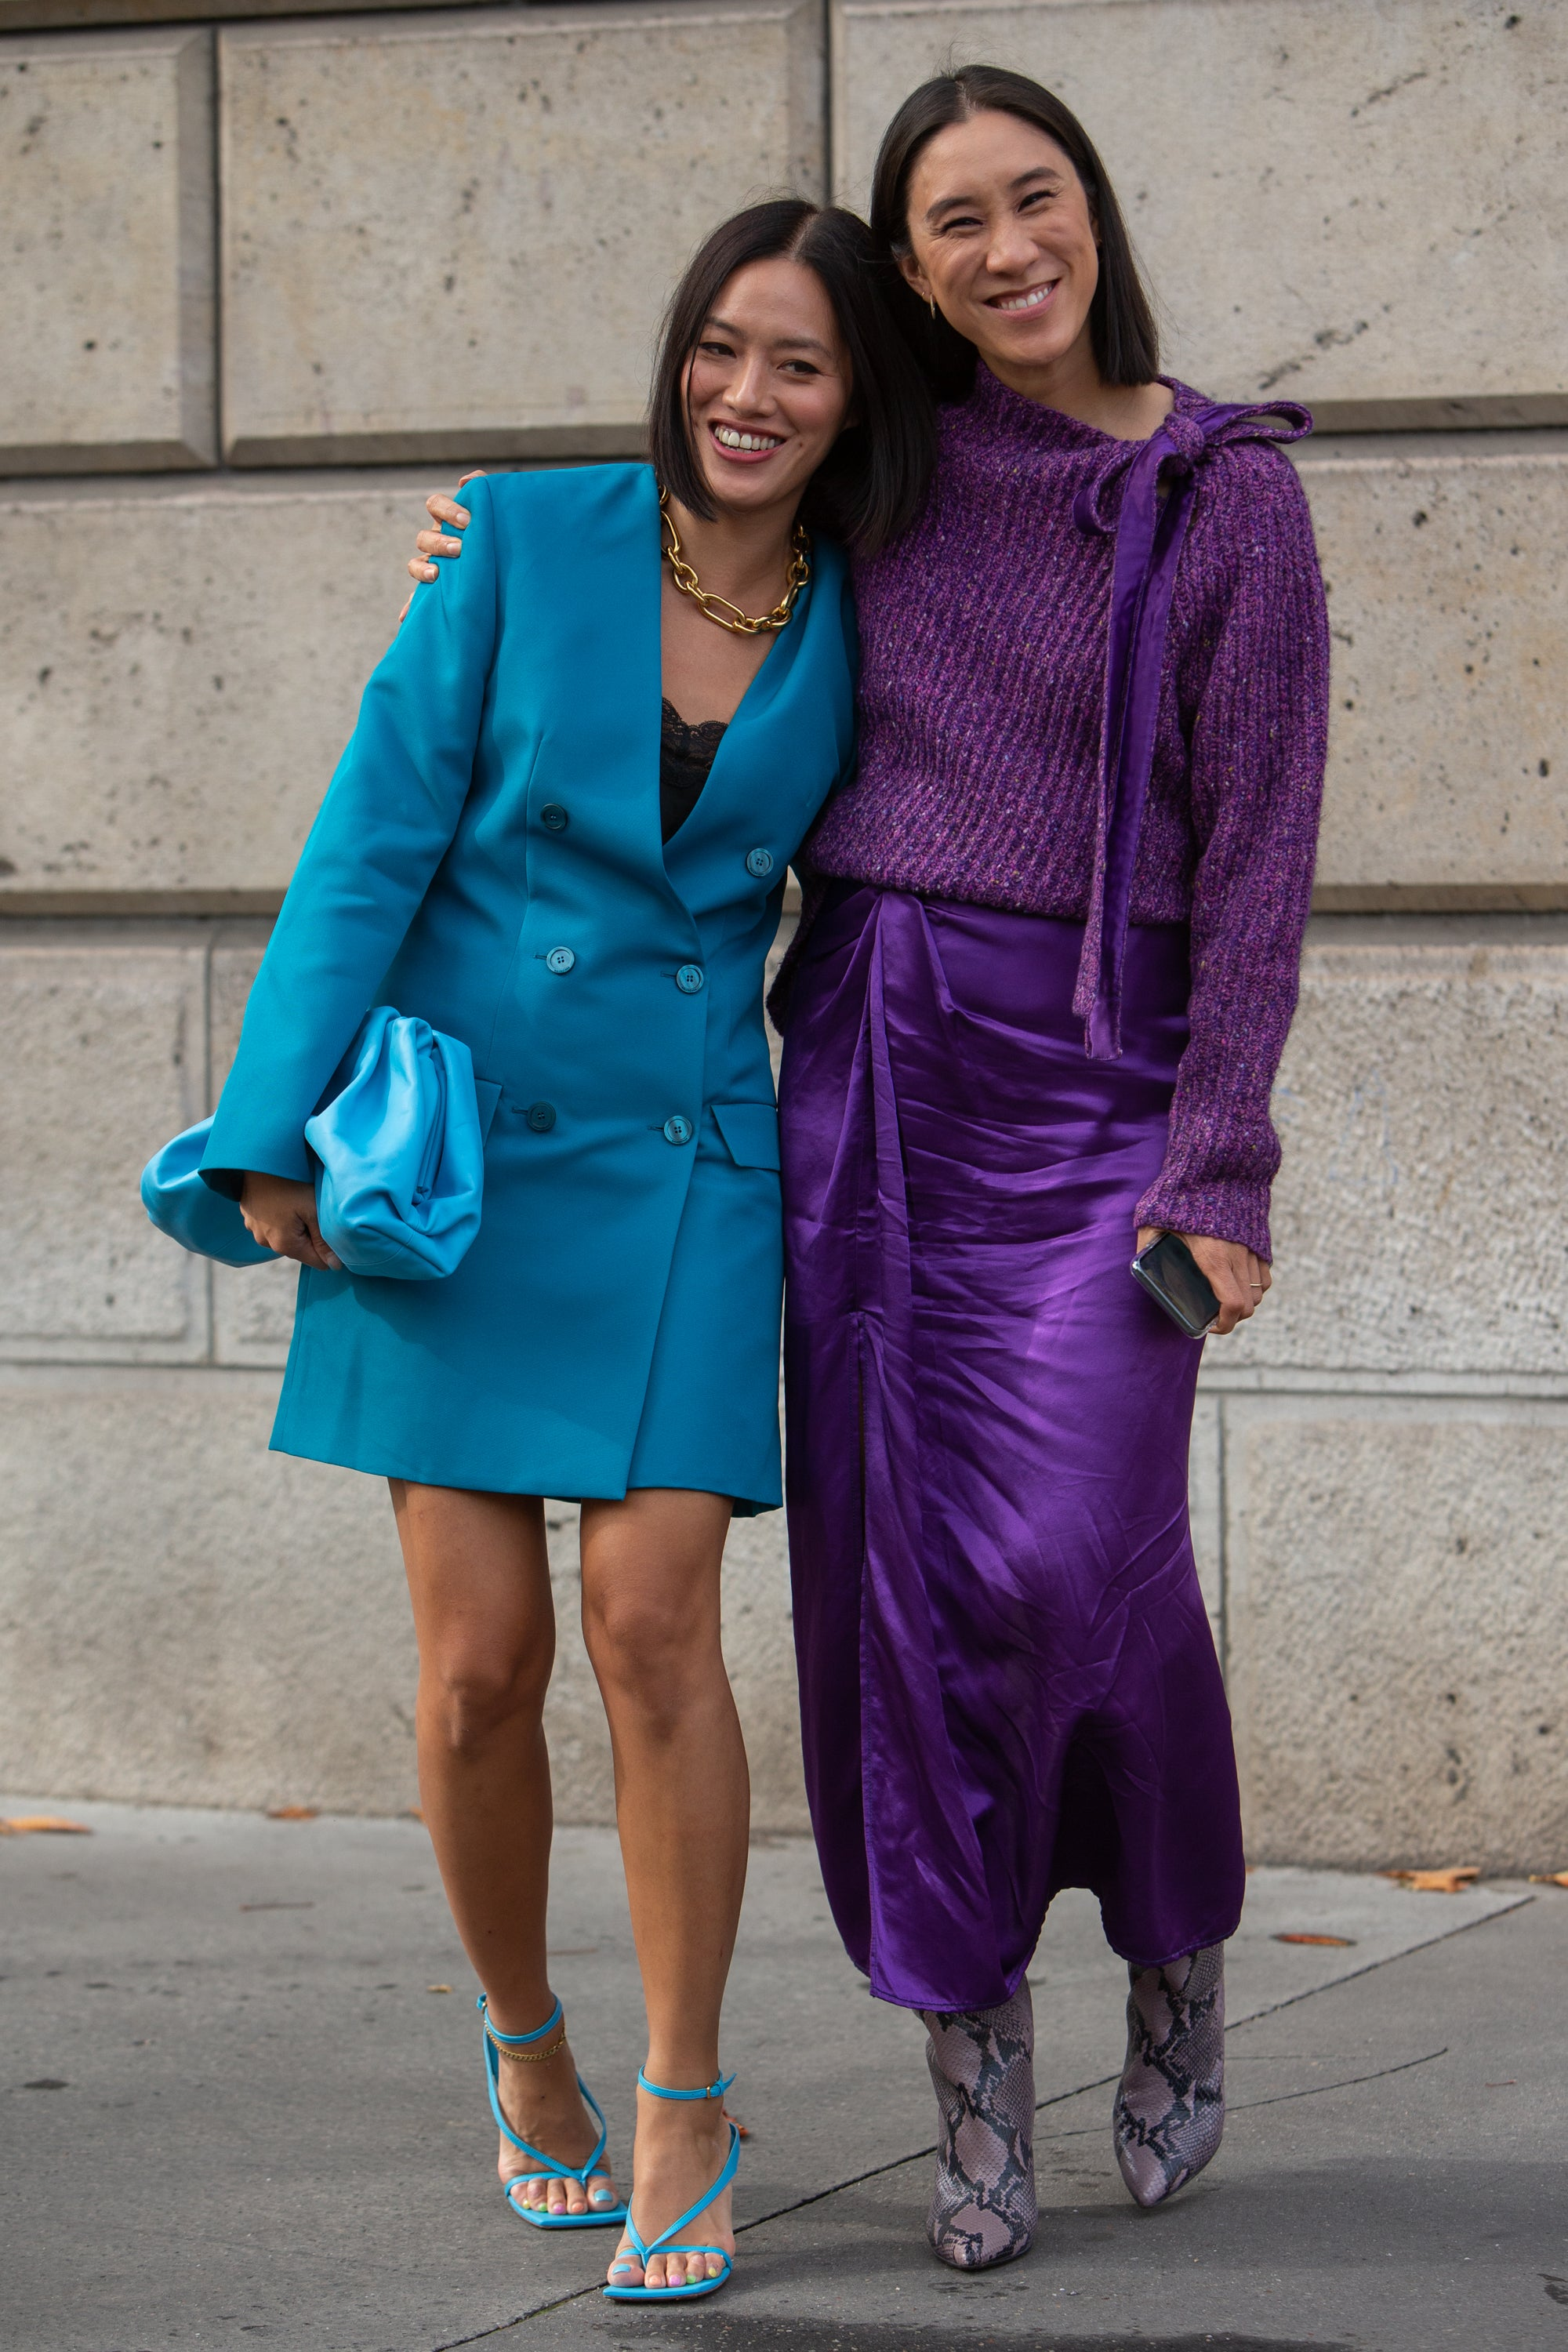 7 Mood-Boosting Fall Trends To Help Ward Off The Seasonal Scaries